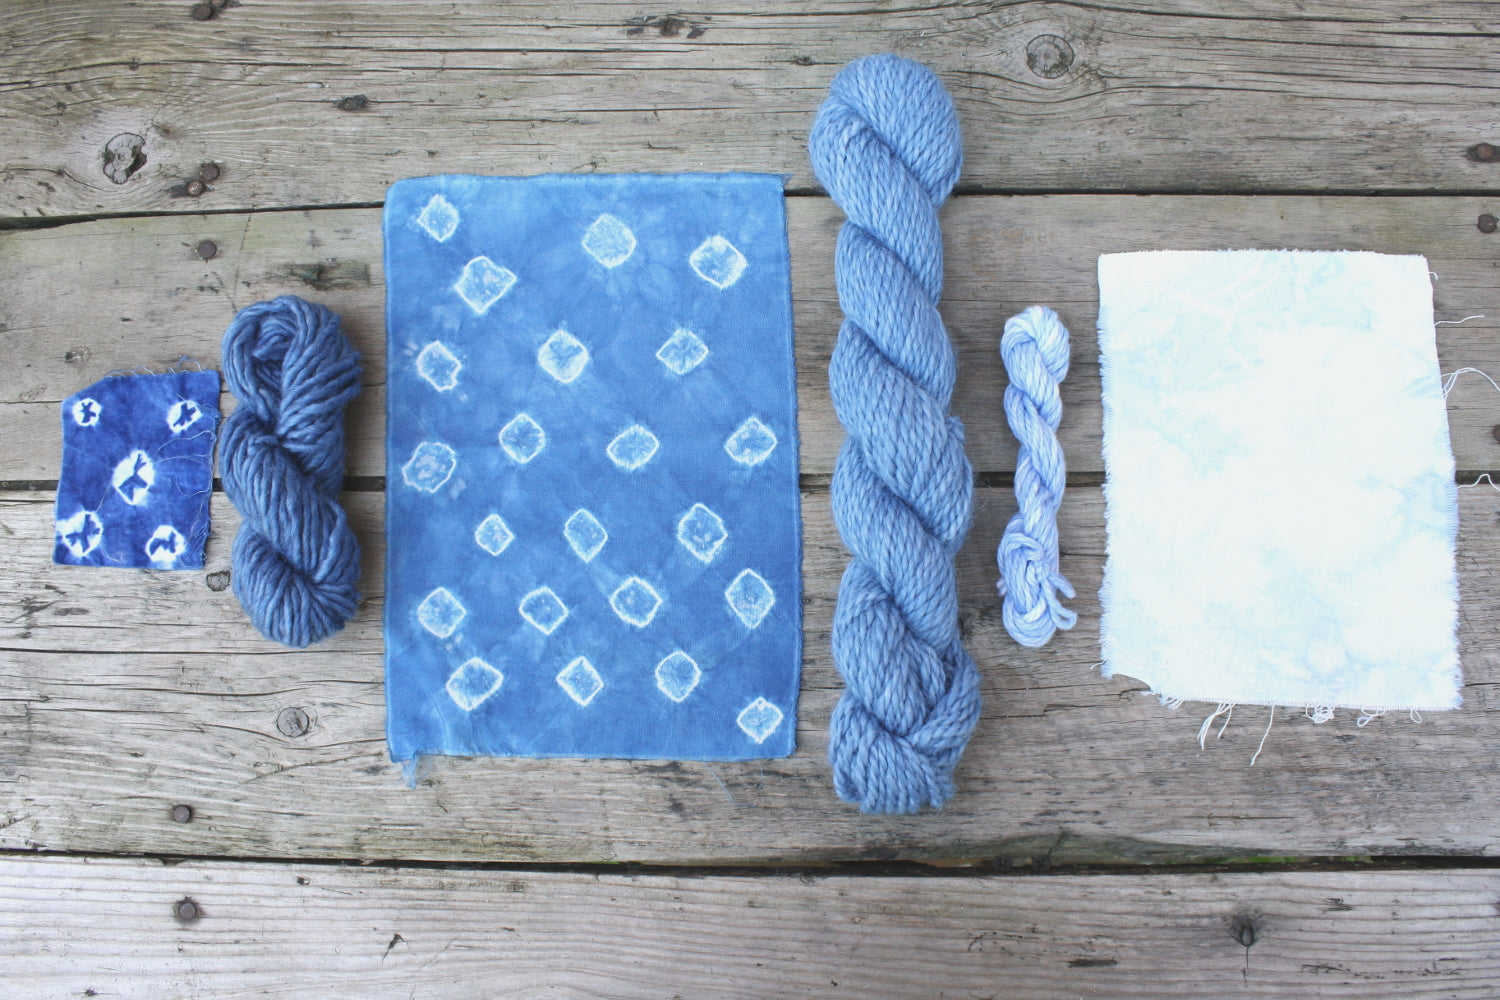 Indigo Dyeing Workshop- NEW DATES COMING SOON